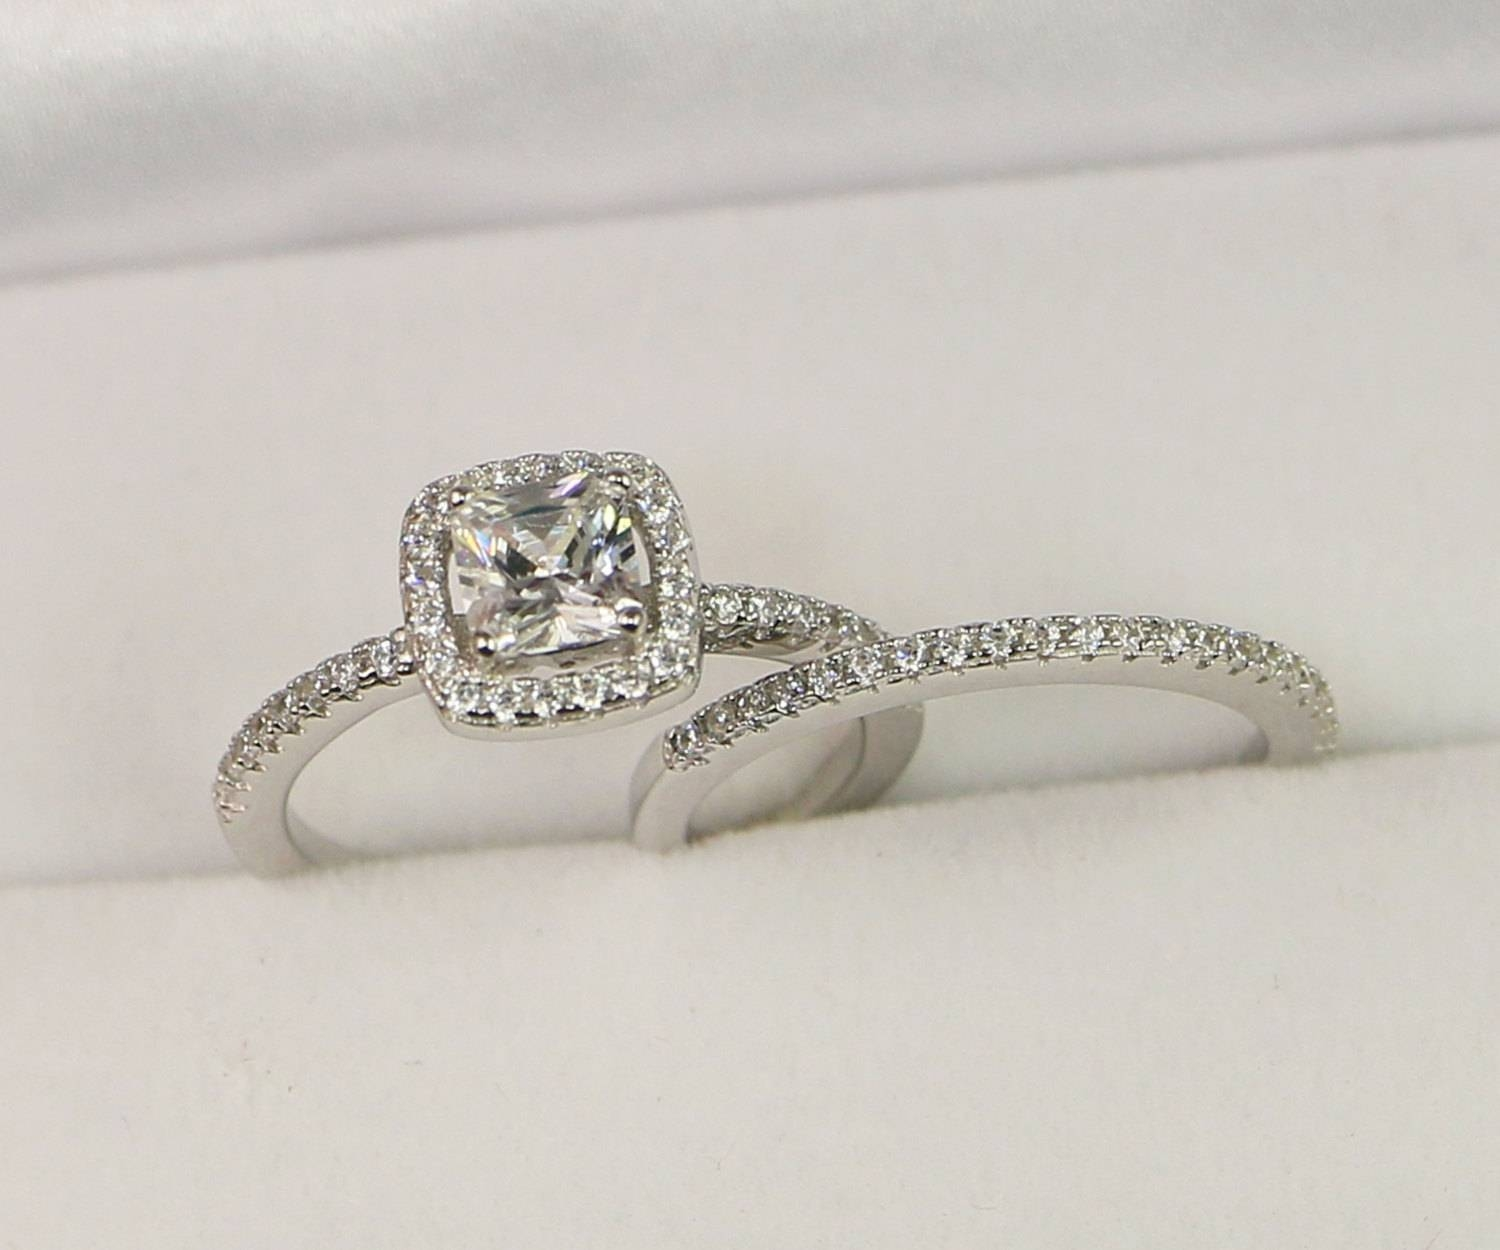 Halo Engagement Ring Wedding Ring Set Sterling Silver Pertaining To Small Size Engagement Rings (Gallery 14 of 15)